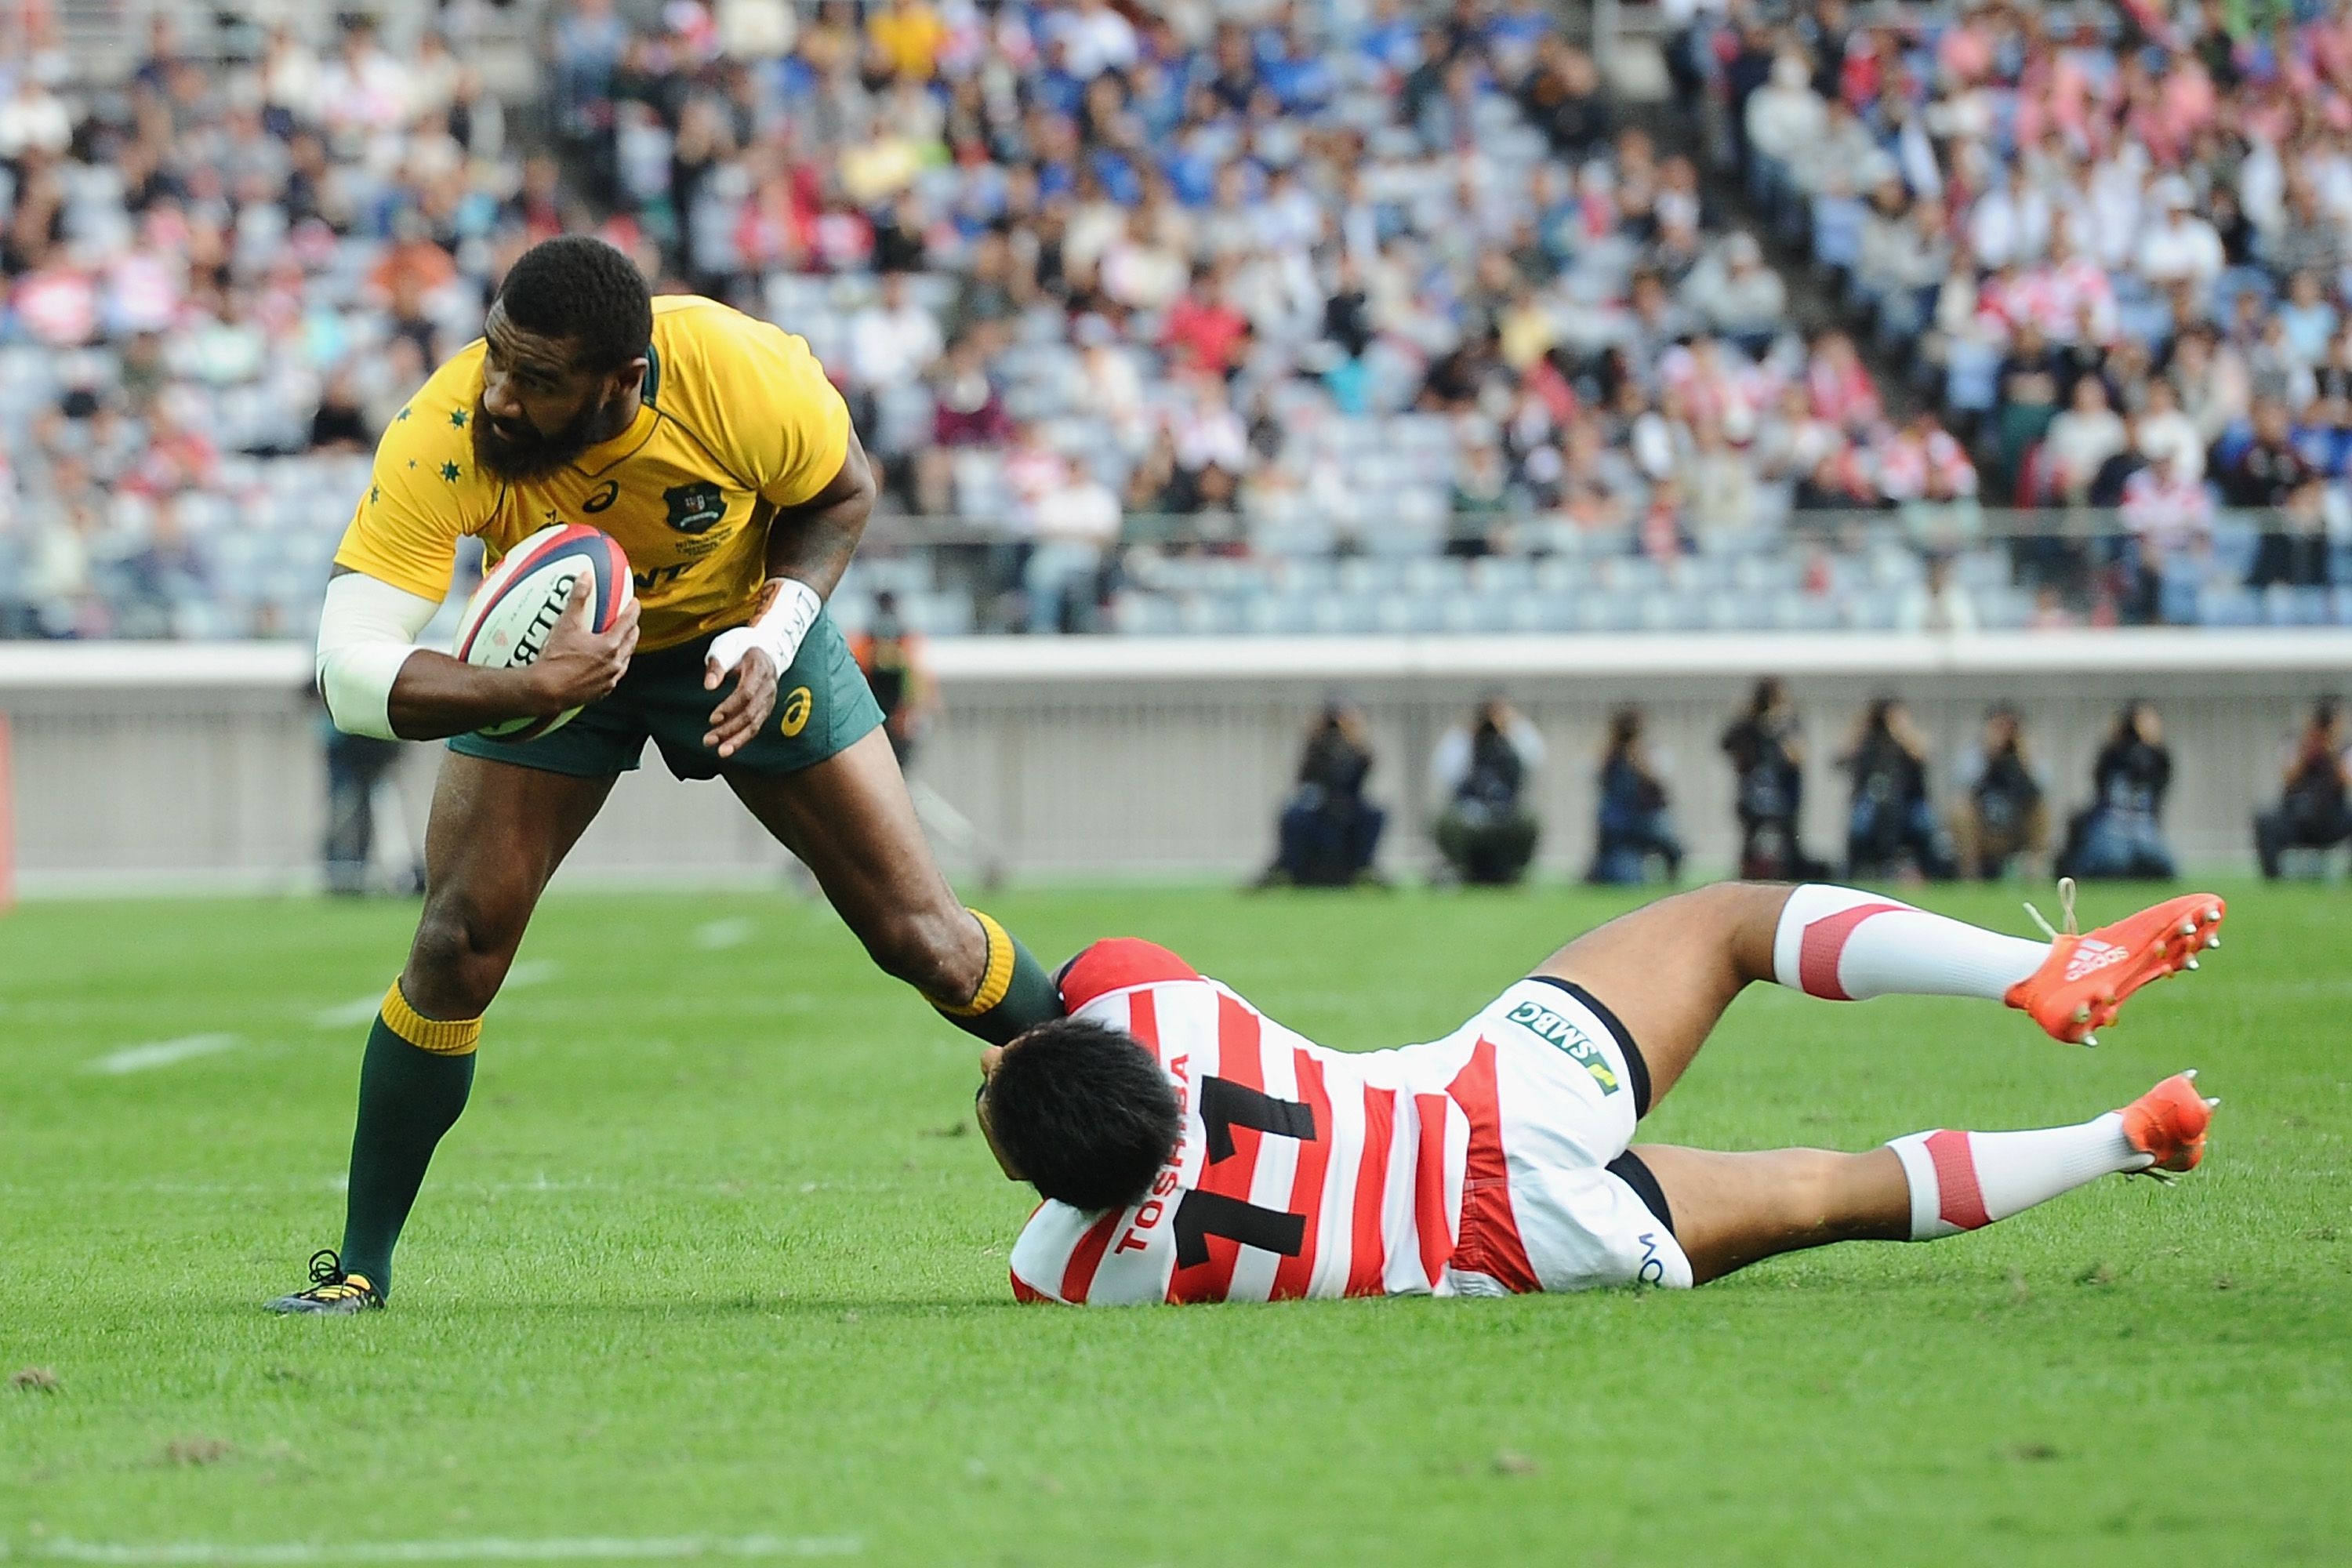 Rugby Australia confirm Wallabies Test against Japan in Oita on October 23